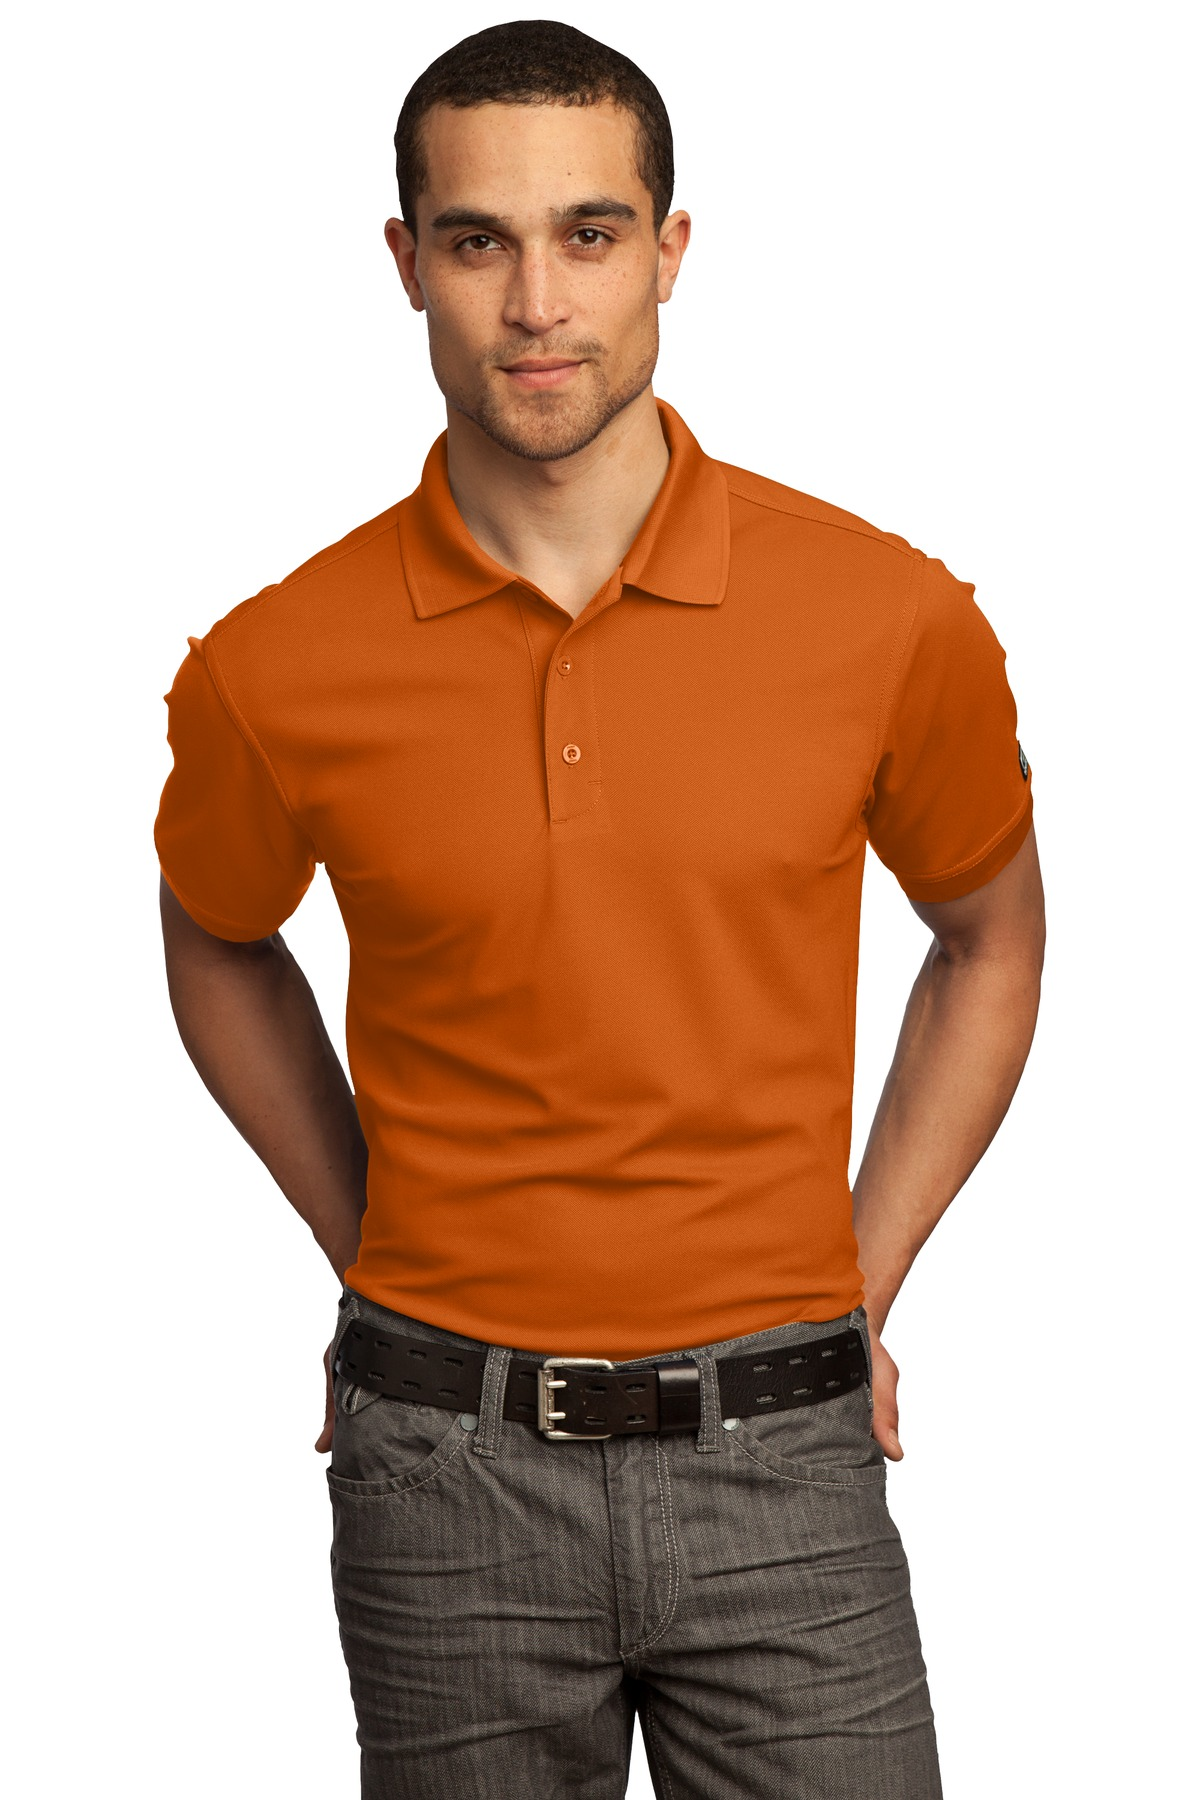 OGIO ®  - Caliber2.0 Polo. OG101 - Flare Orange